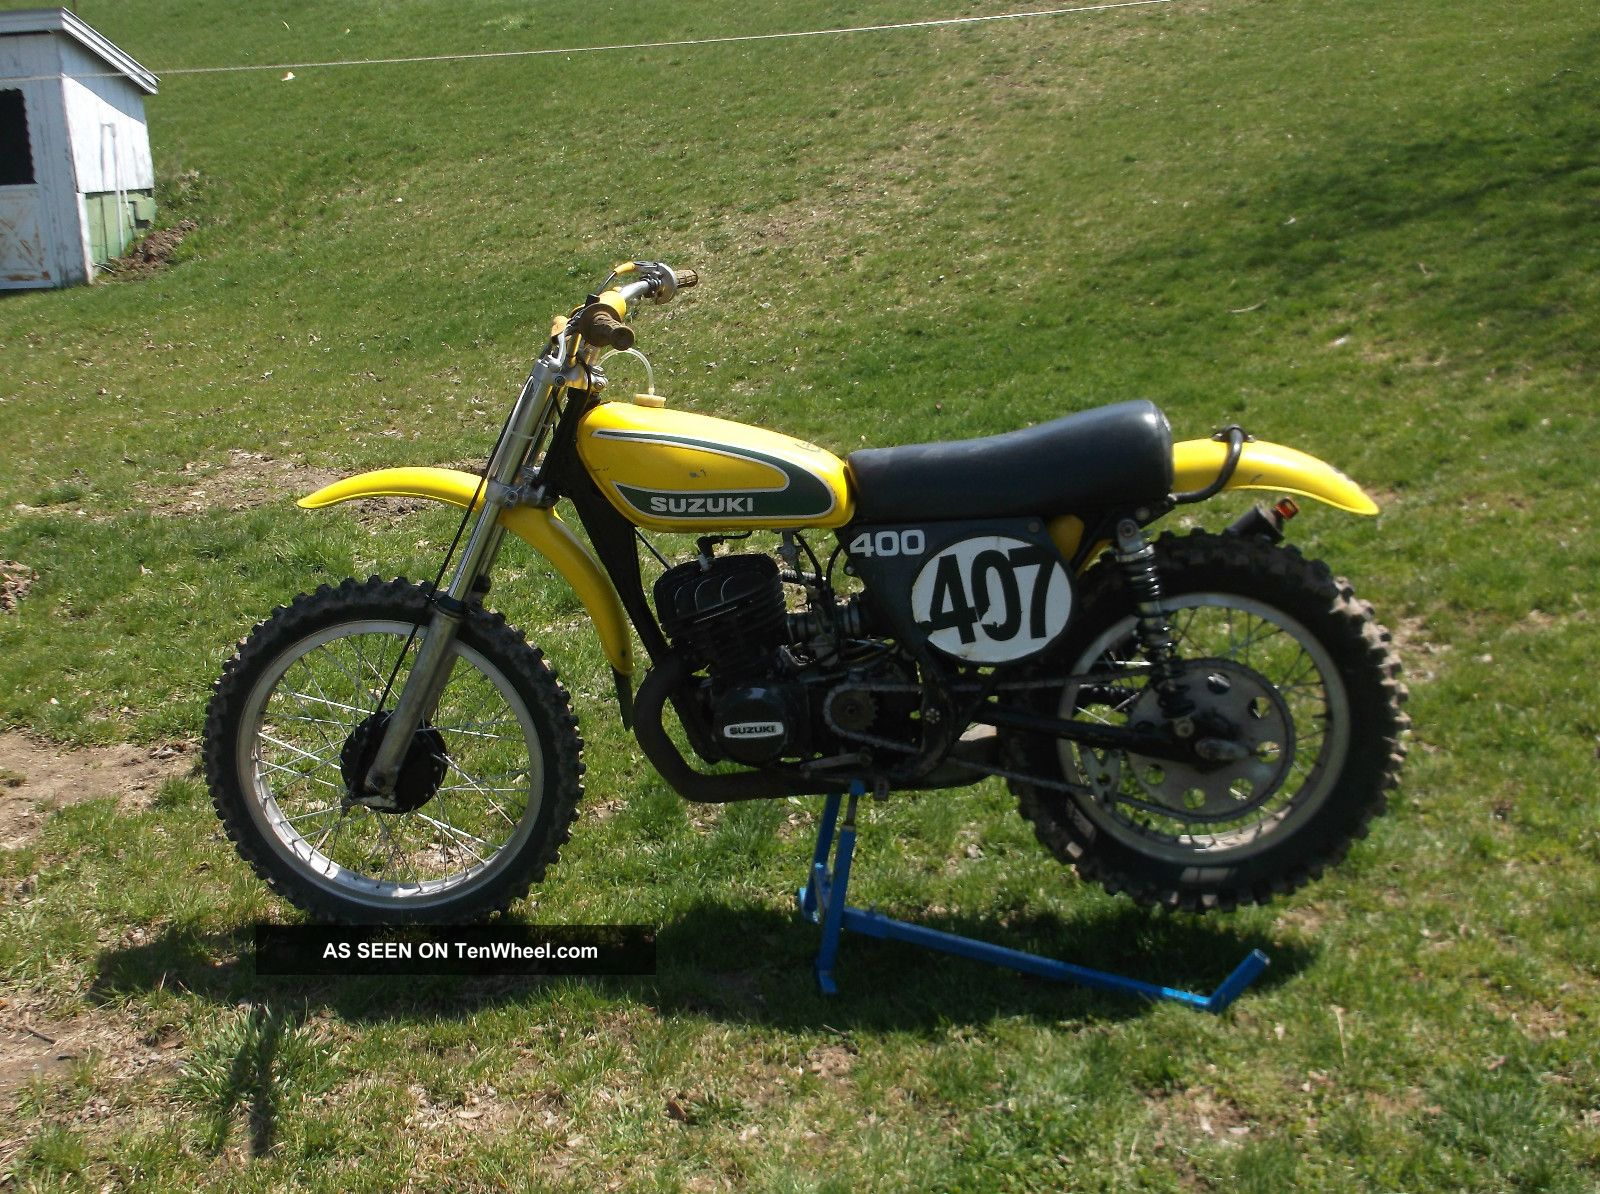 1973 Suzuki Tm 400 Vintage Ahrma Motocross Other photo